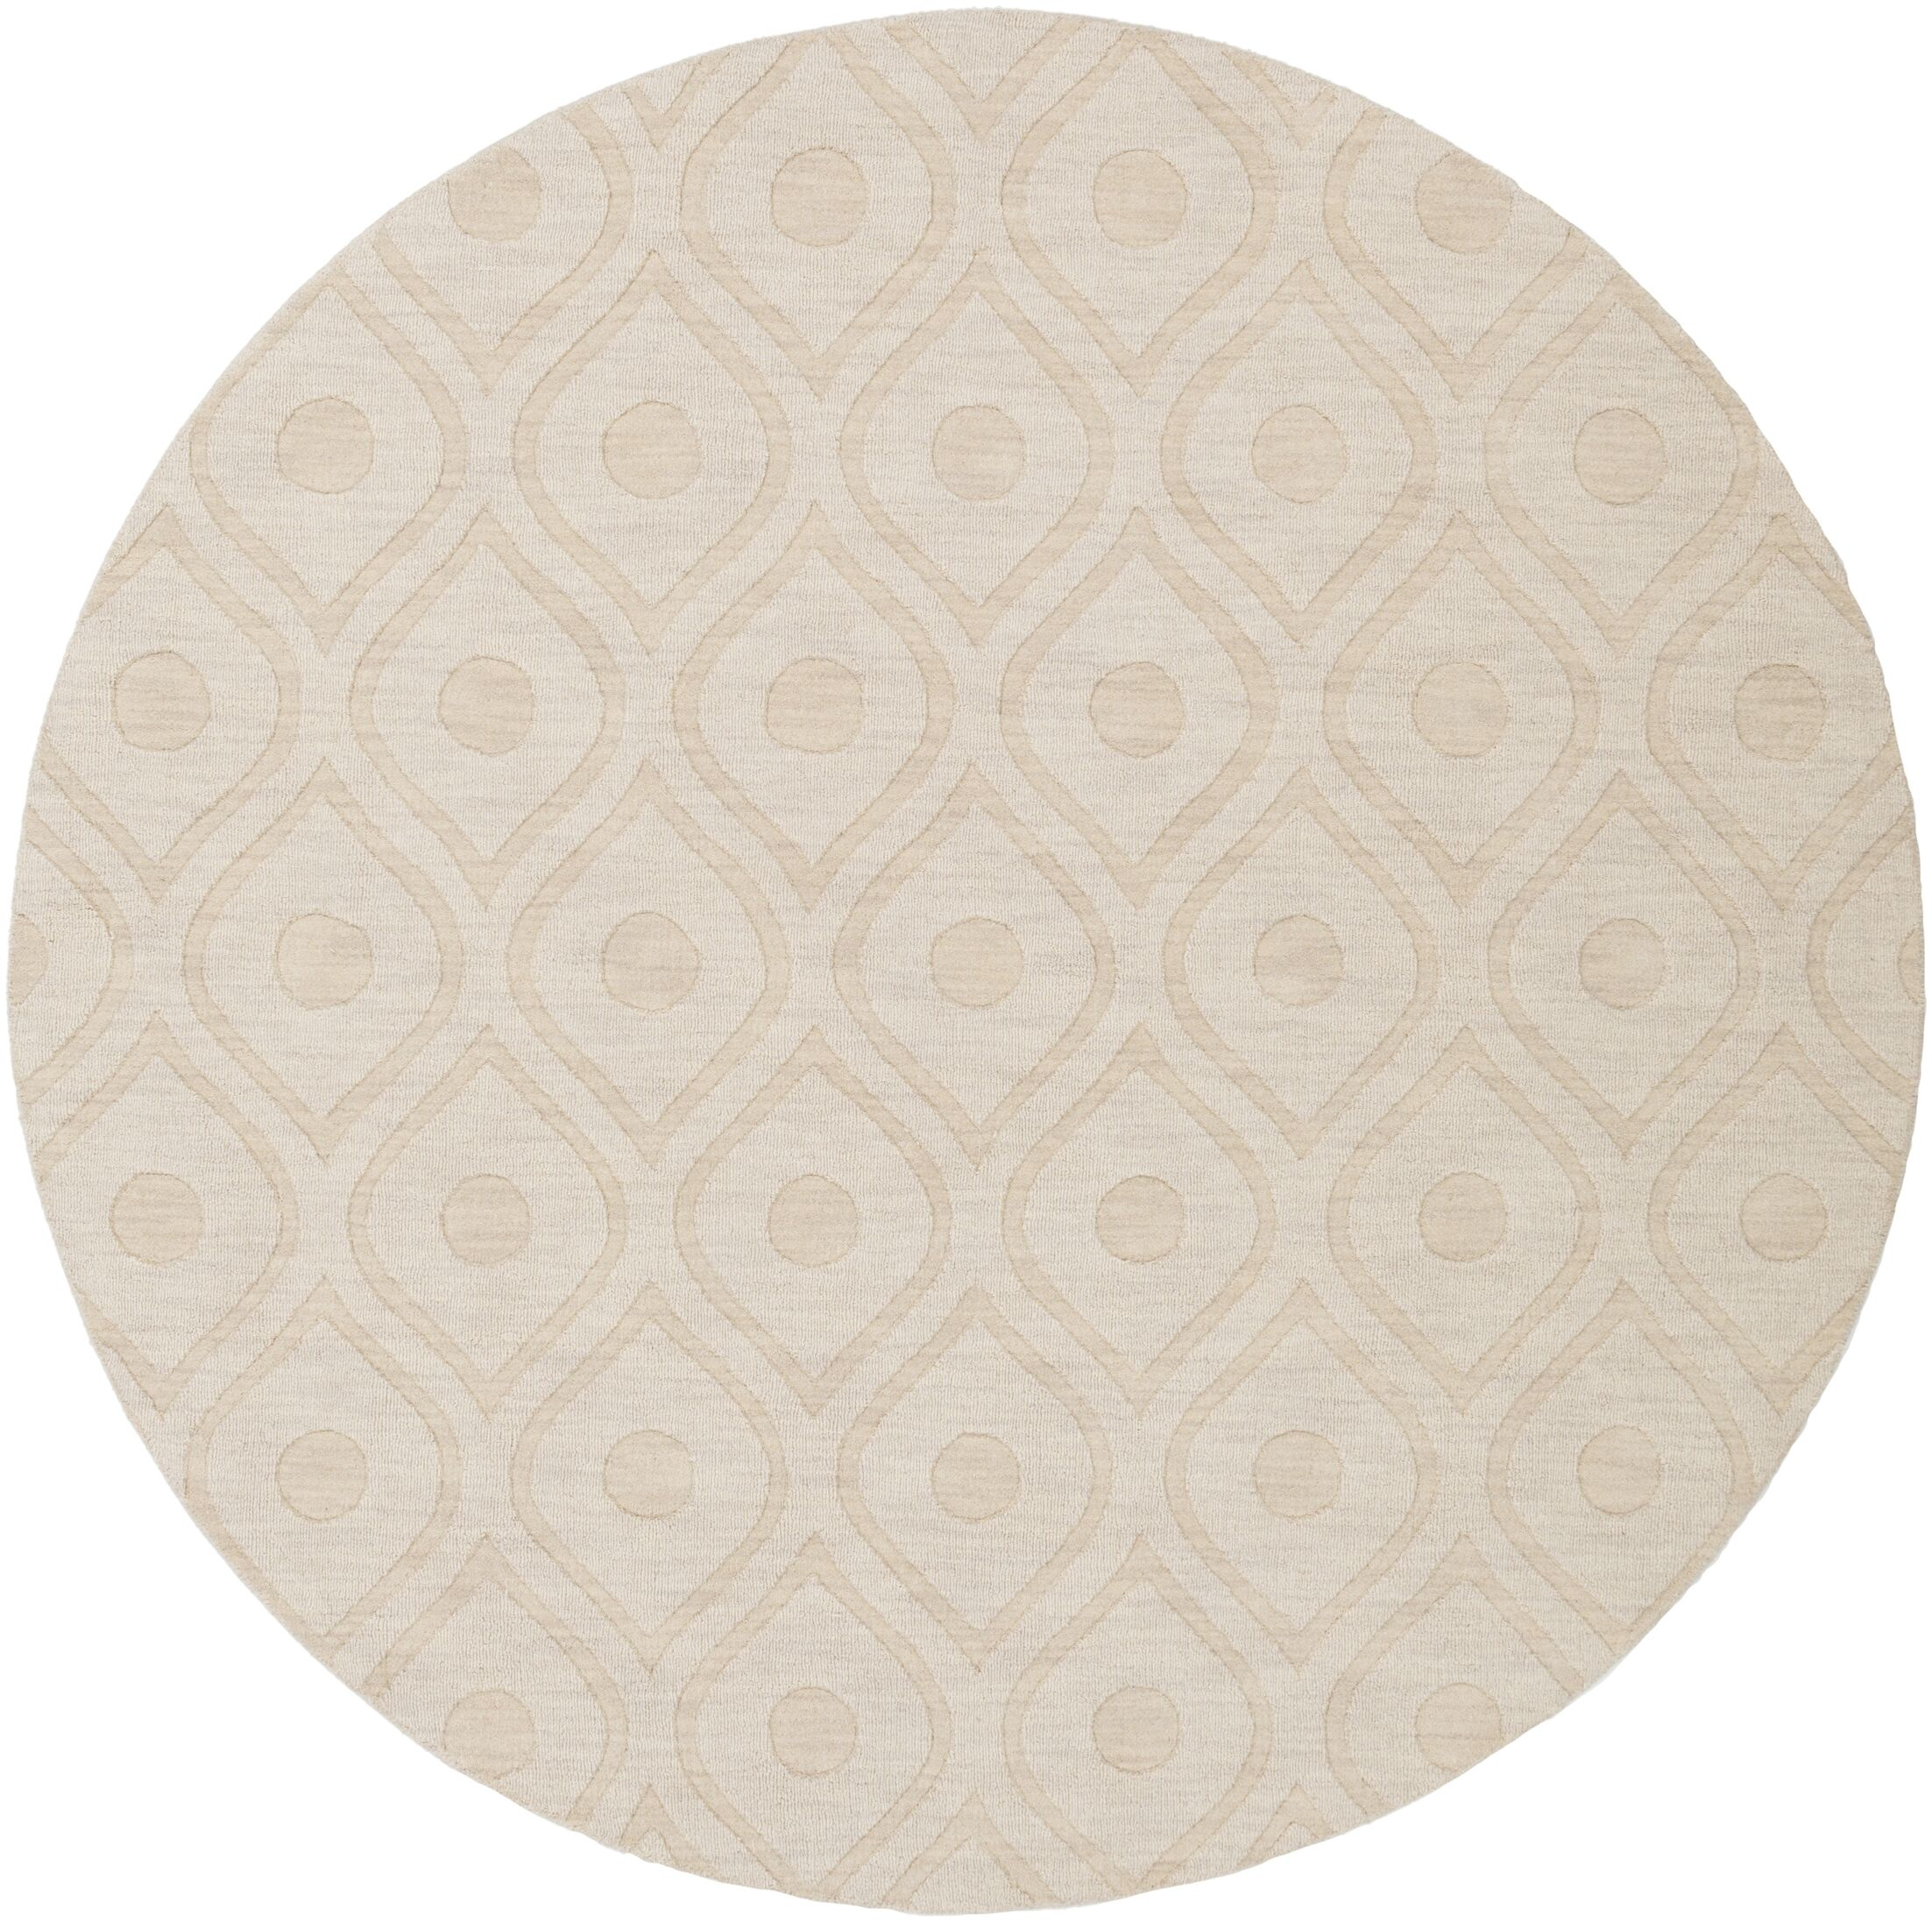 Castro Hand Woven Wool Beige Area Rug Rug Size: Round 6'